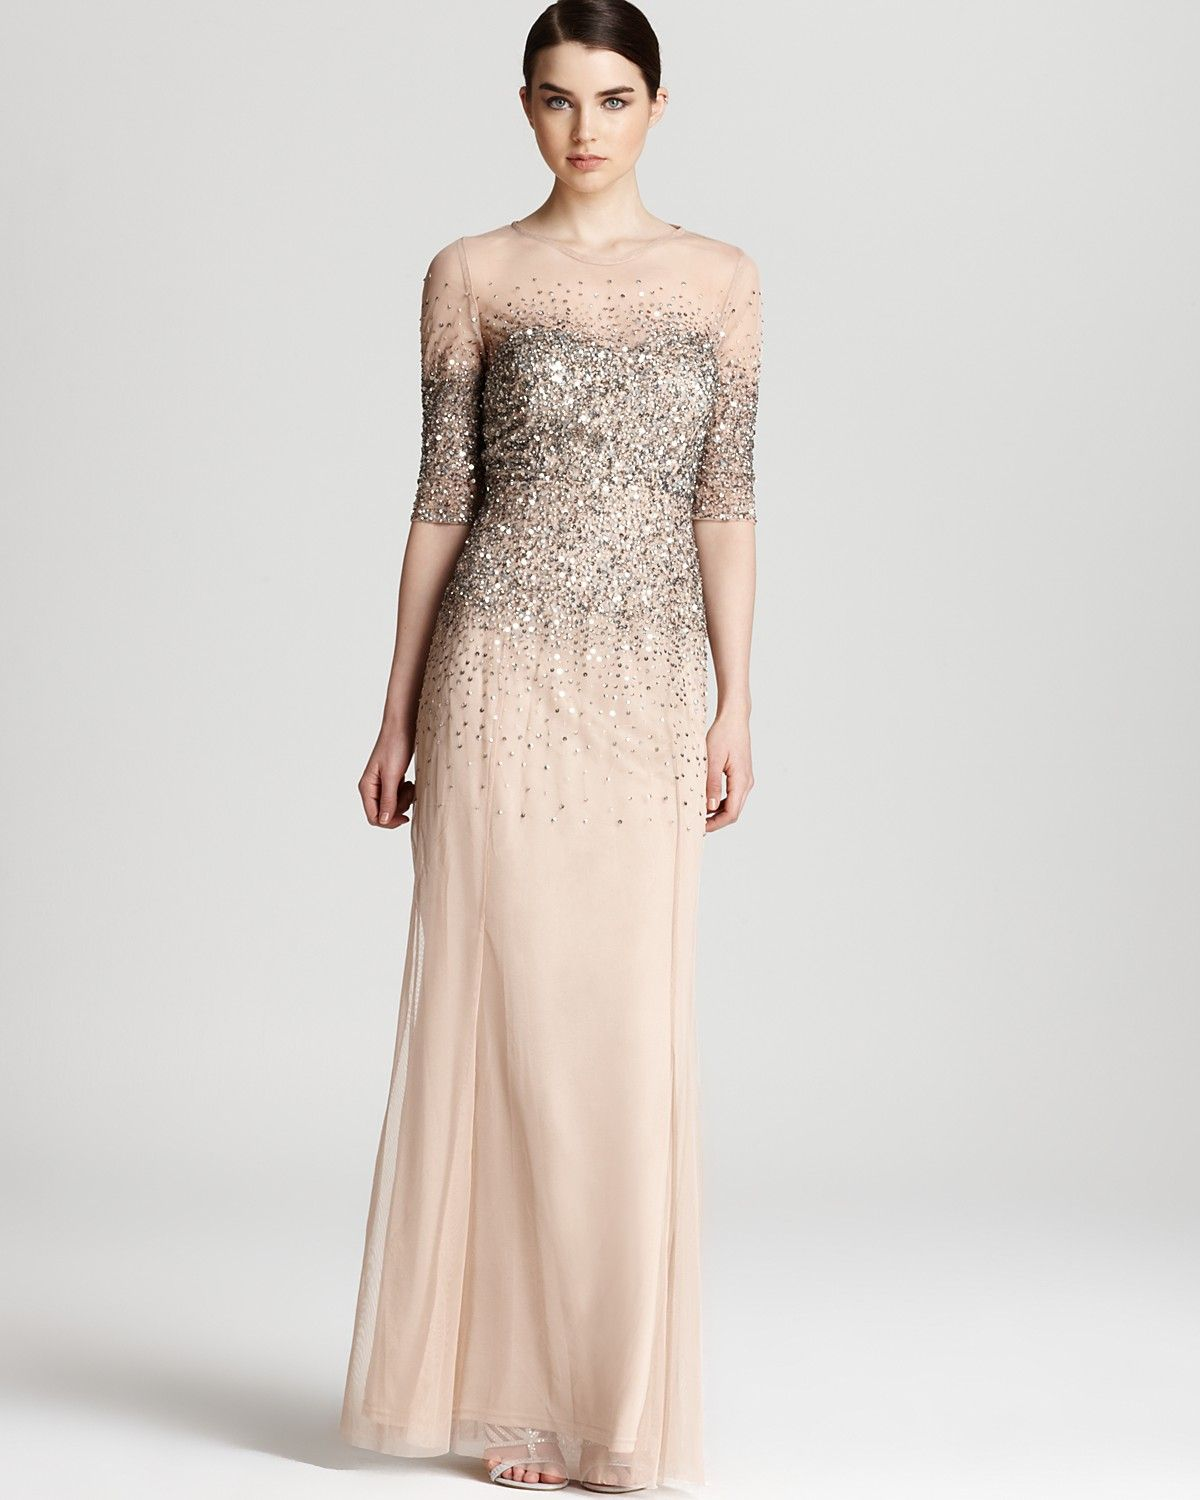 Adrianna Papell Sleeveless Lace Dress In Champagne